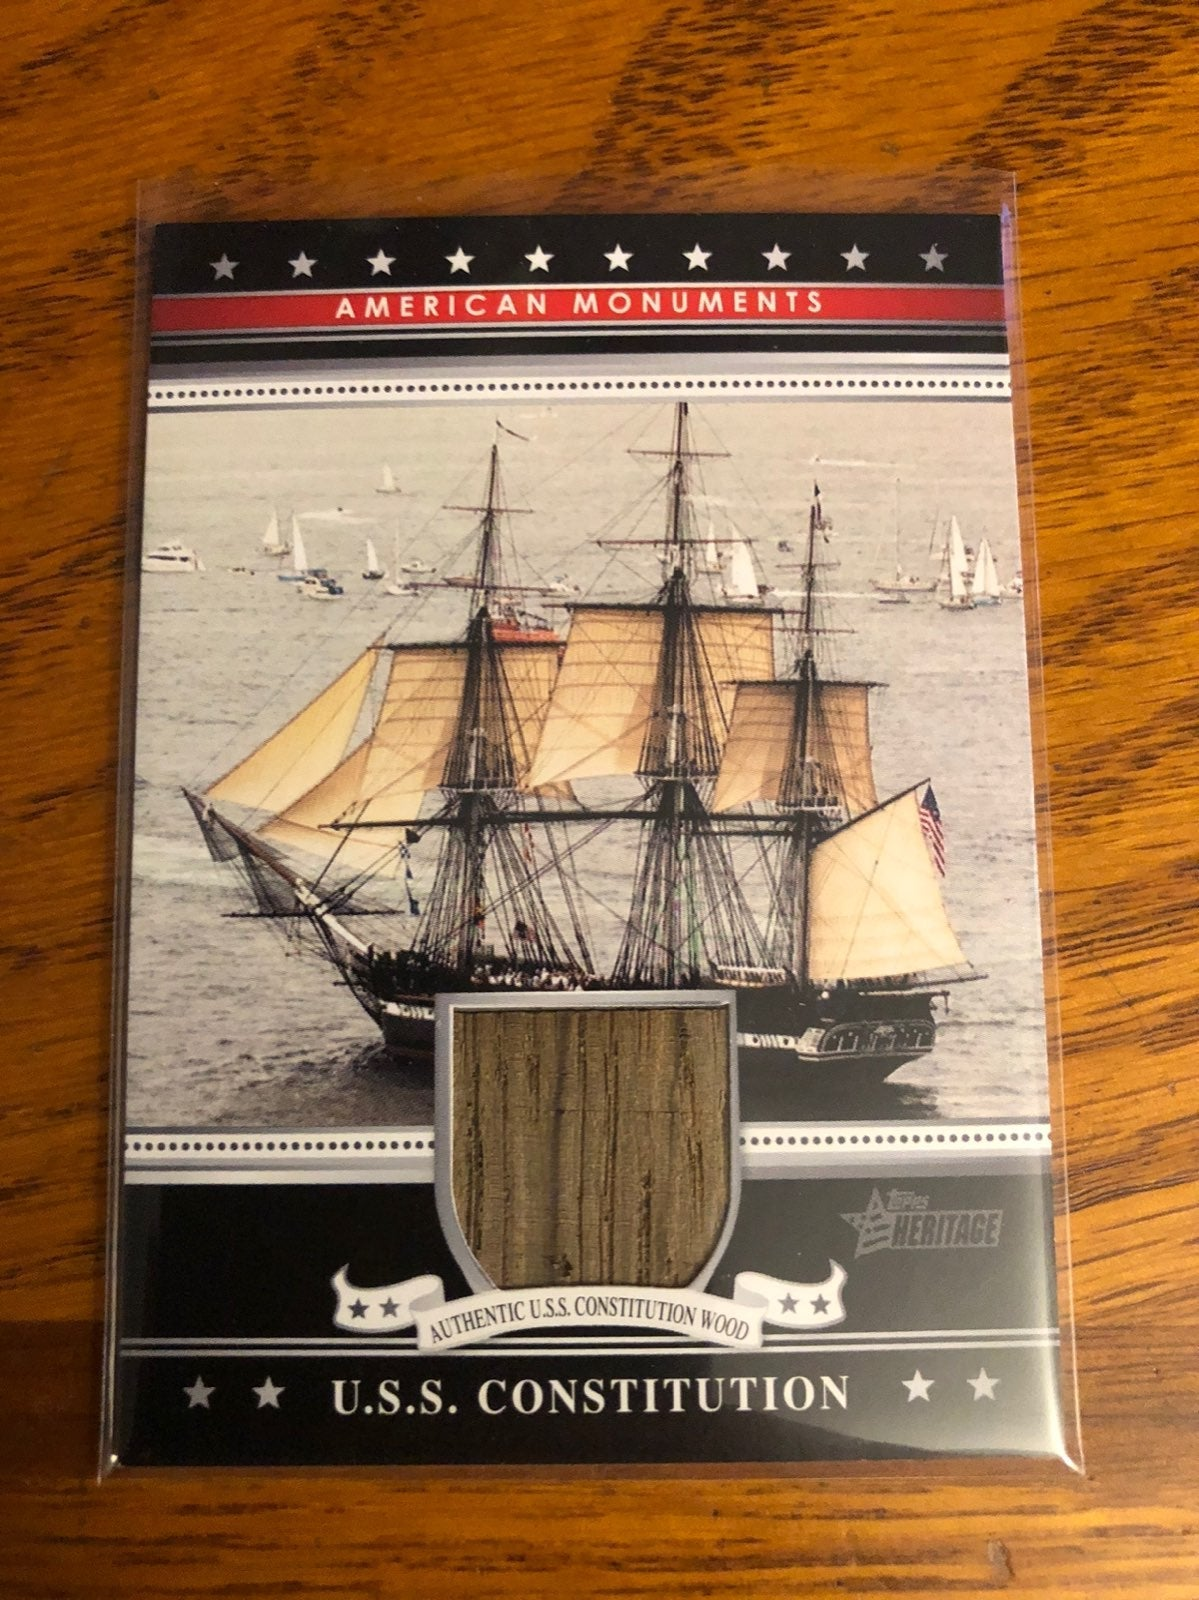 2009 Topps U.S.S. Constitution card